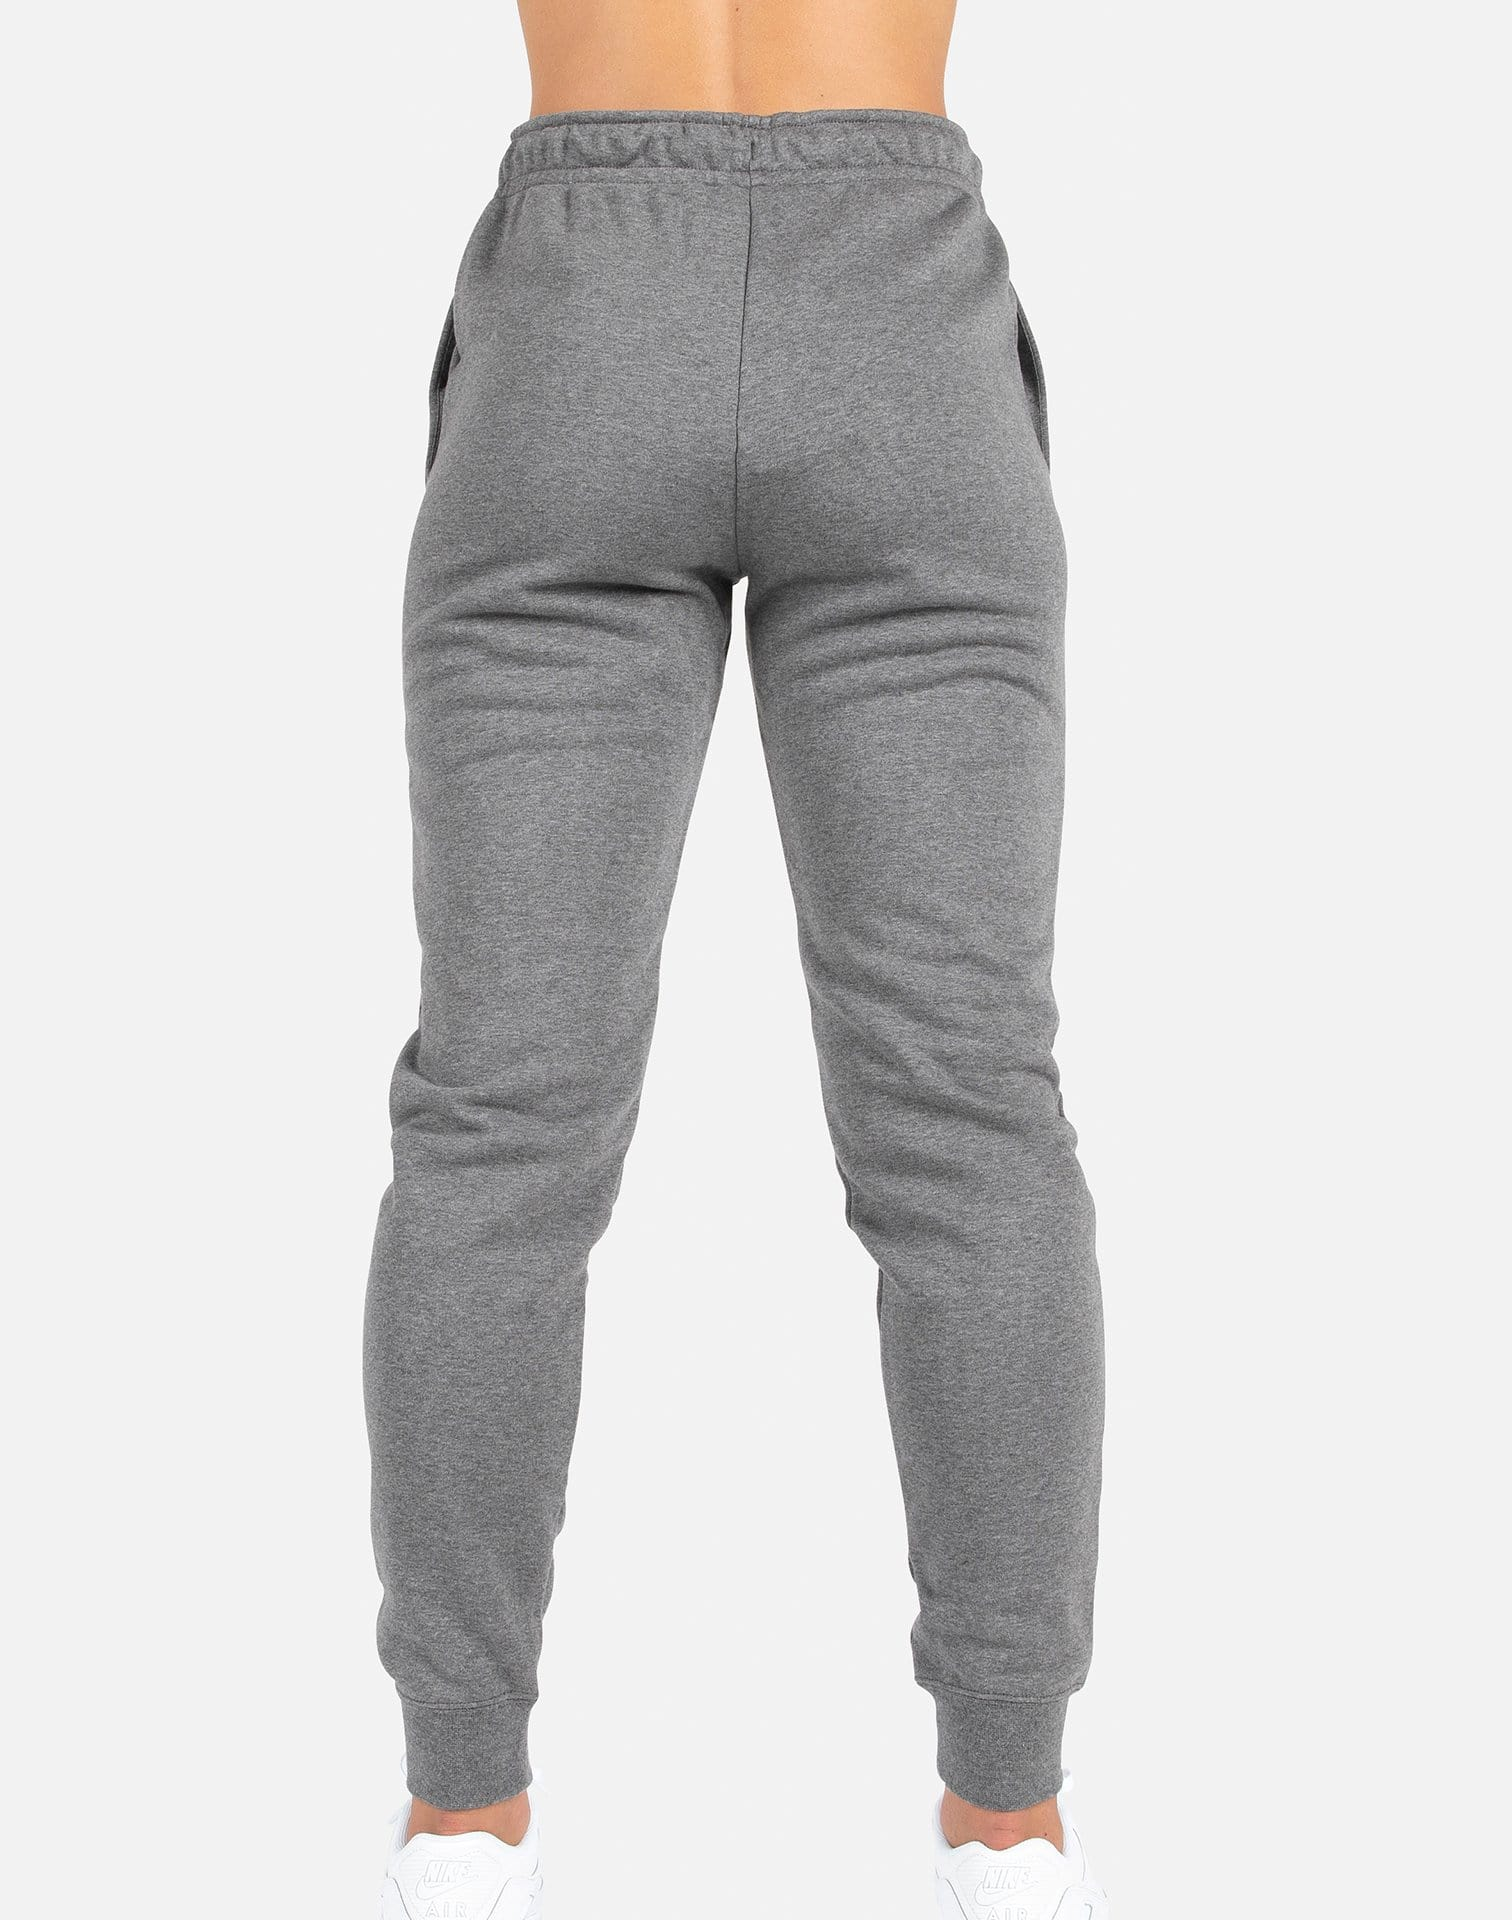 Nike Women's Essential Fleece Pants